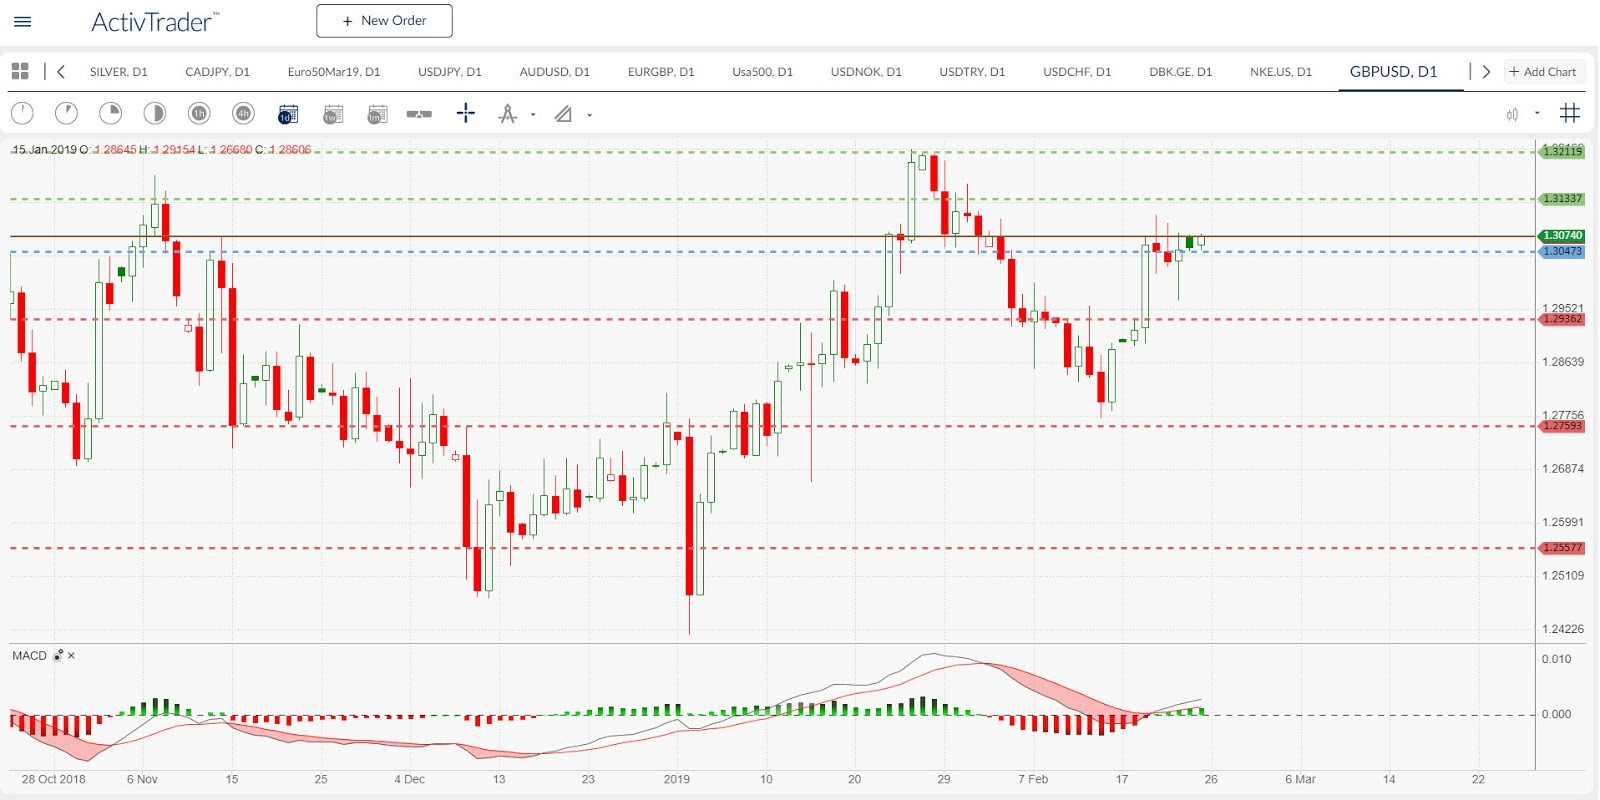 GBP/USD Daily Chart | Source: ActivTrader